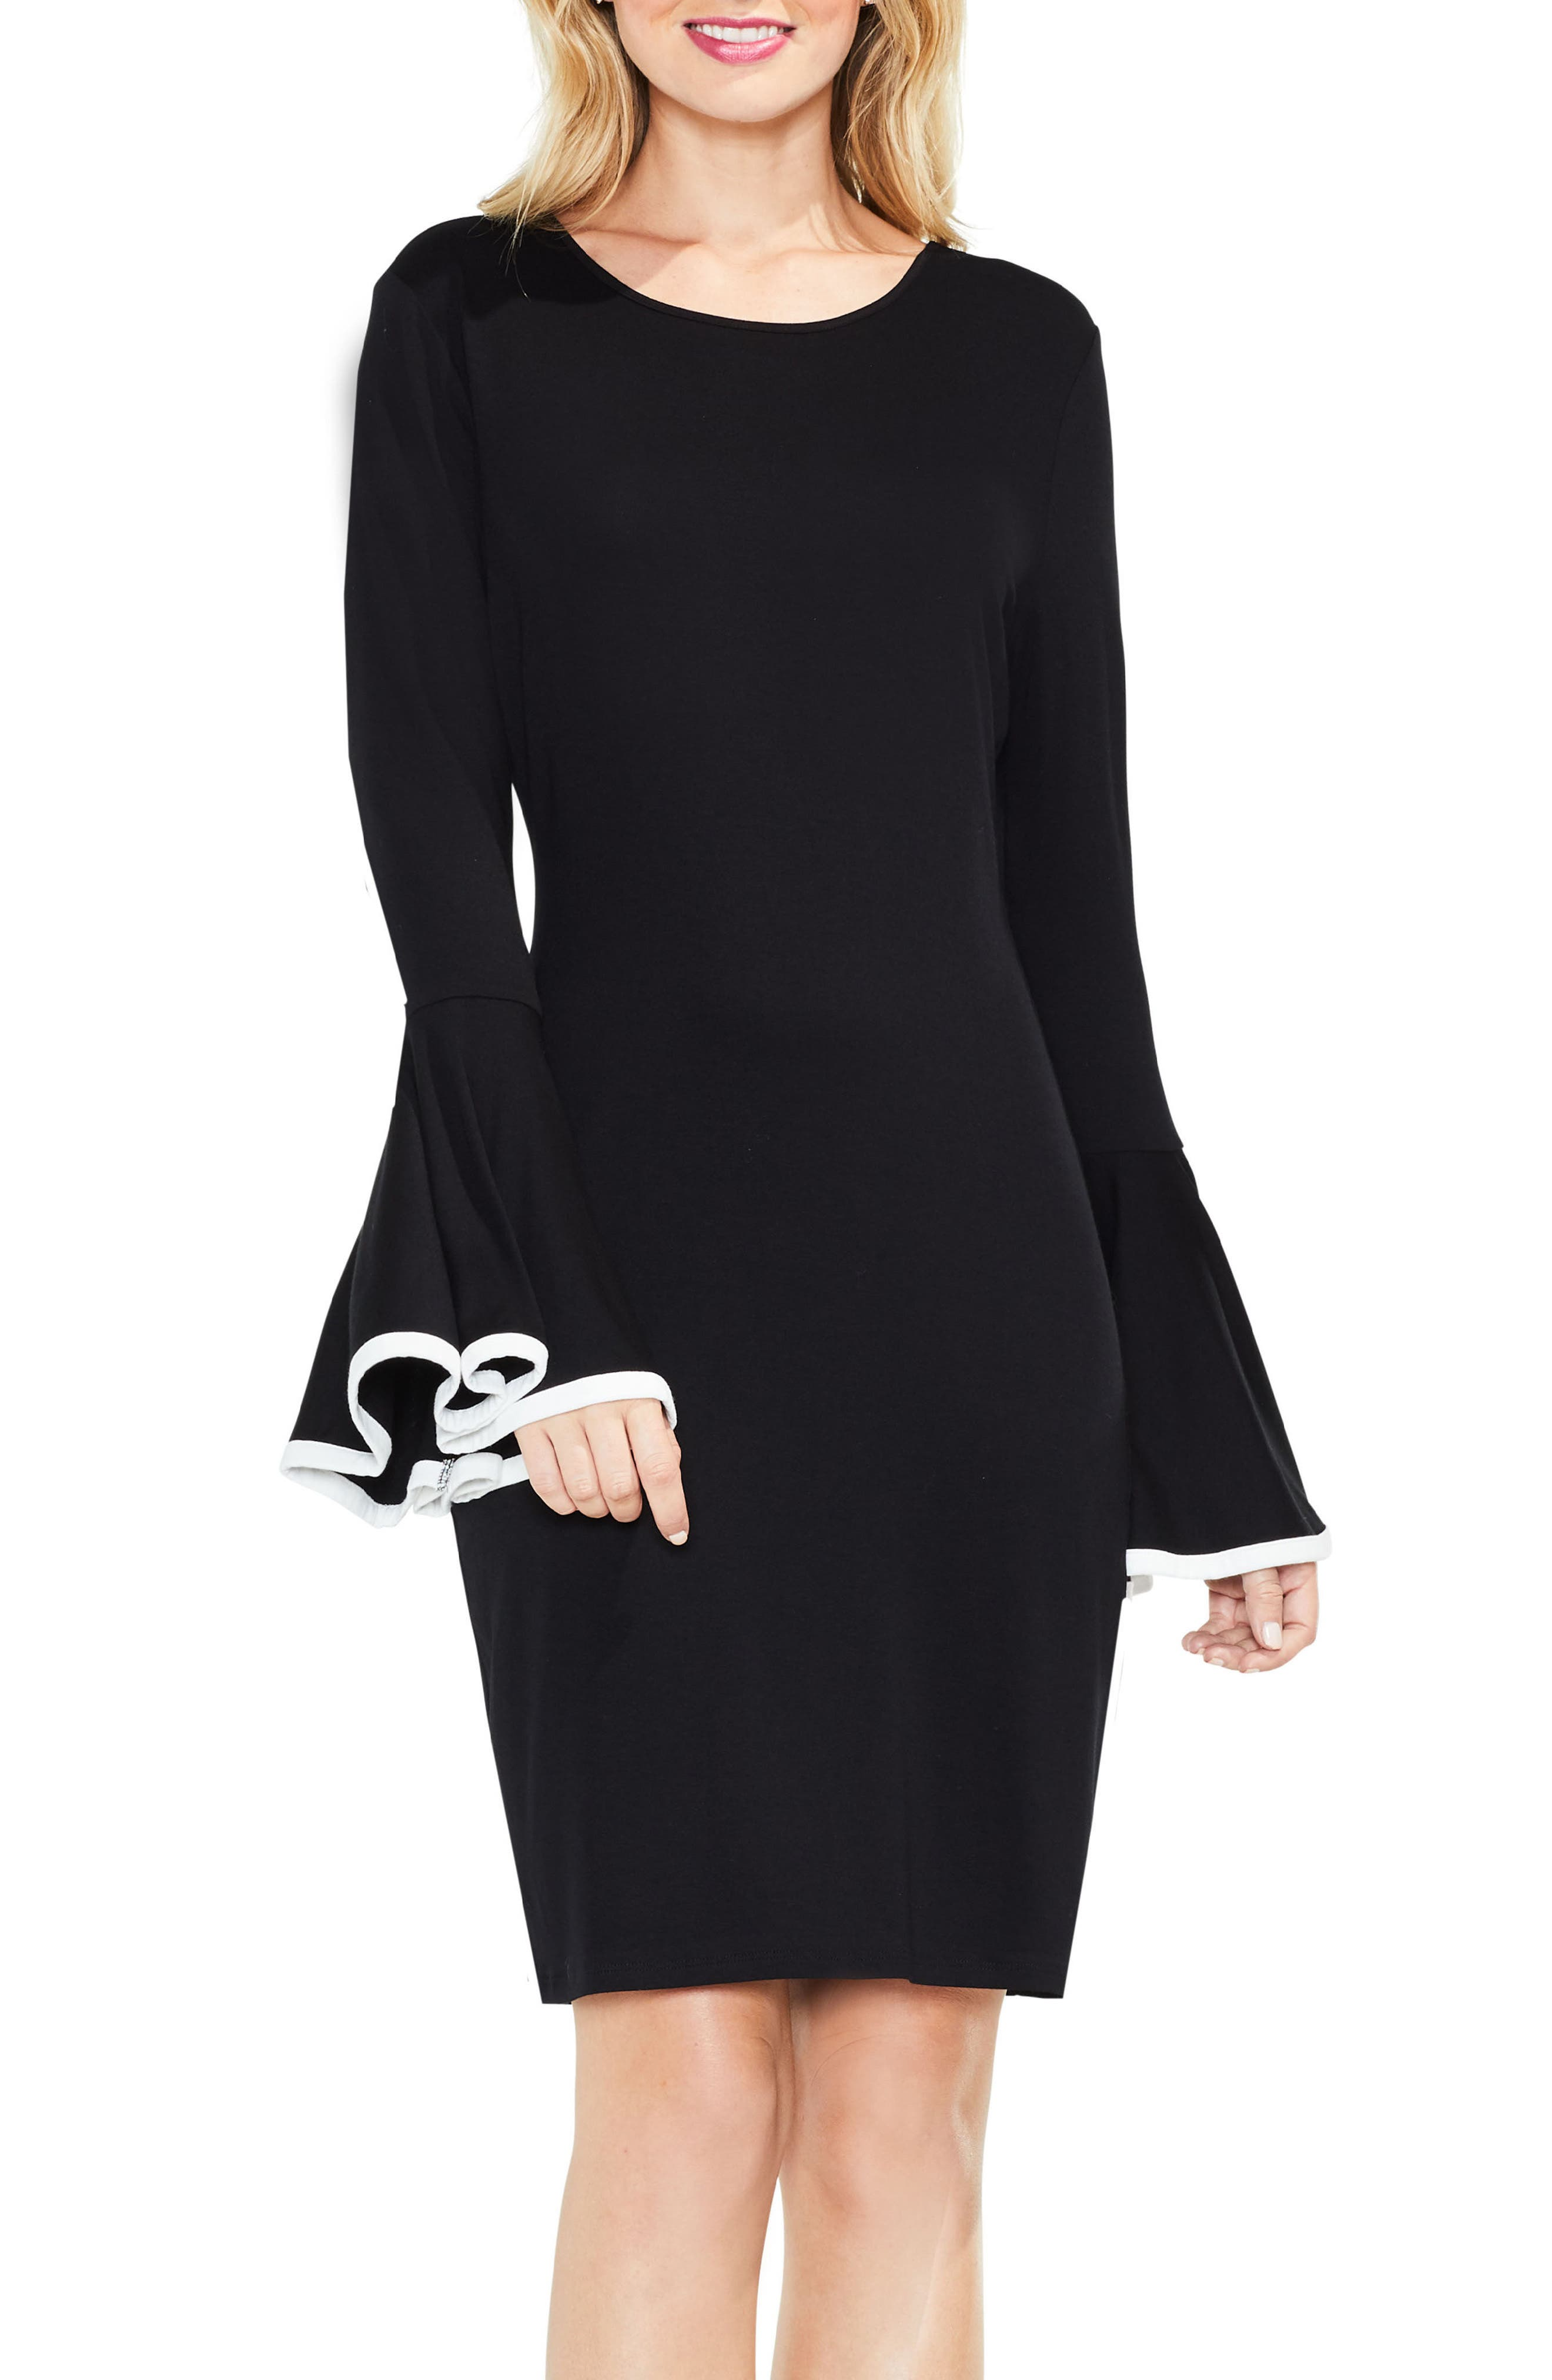 Alternate Image 1 Selected - Vince Camuto Circle Cuff Dress